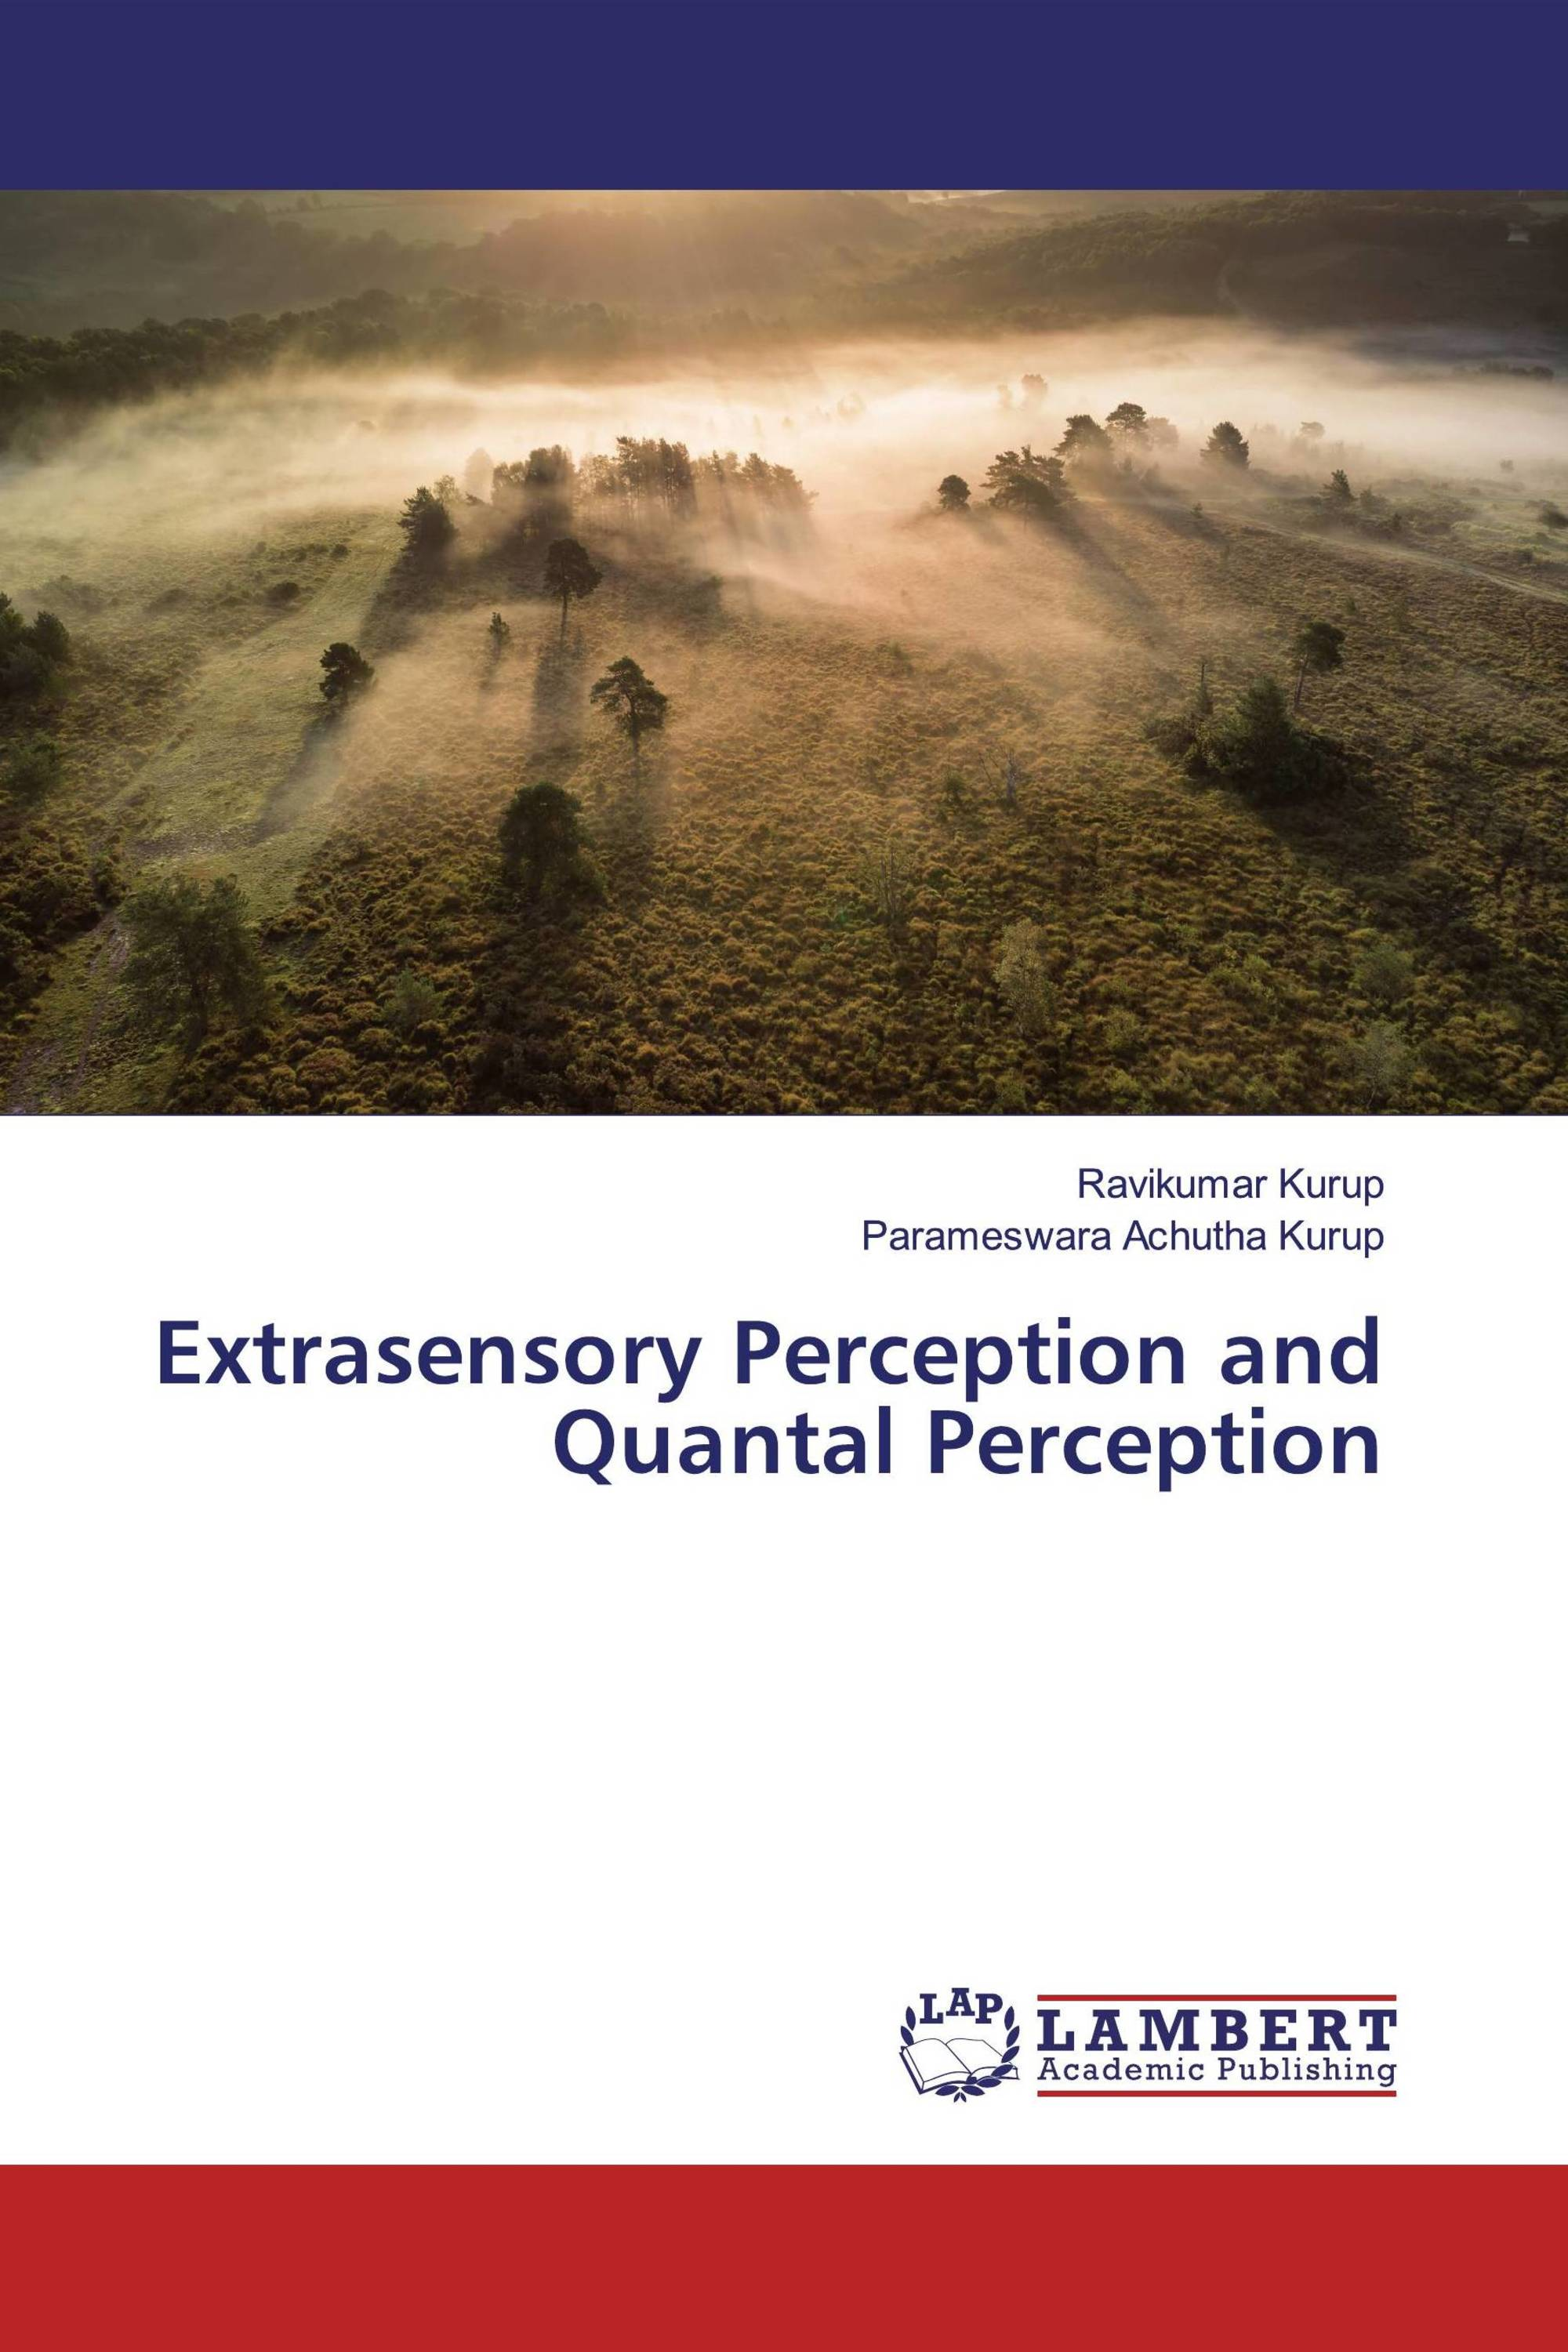 Extrasensory Perception and Quantal Perception